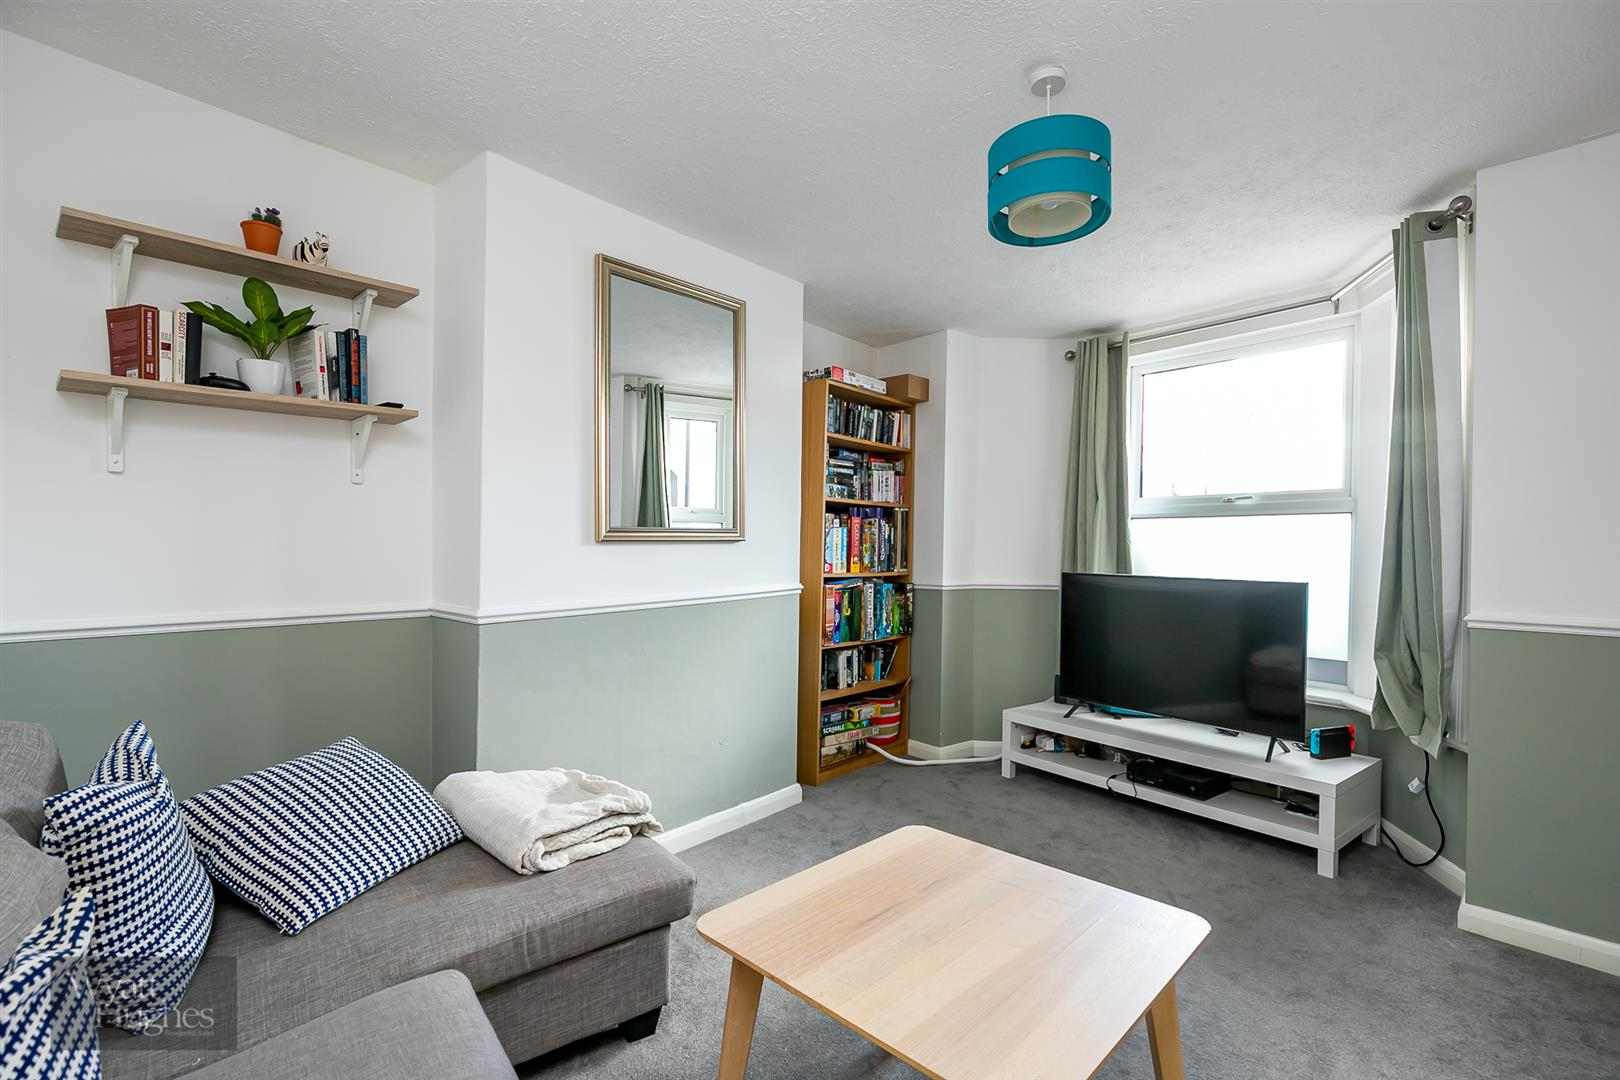 3 bed terraced house for sale in St. Marys Road, Hastings, TN34